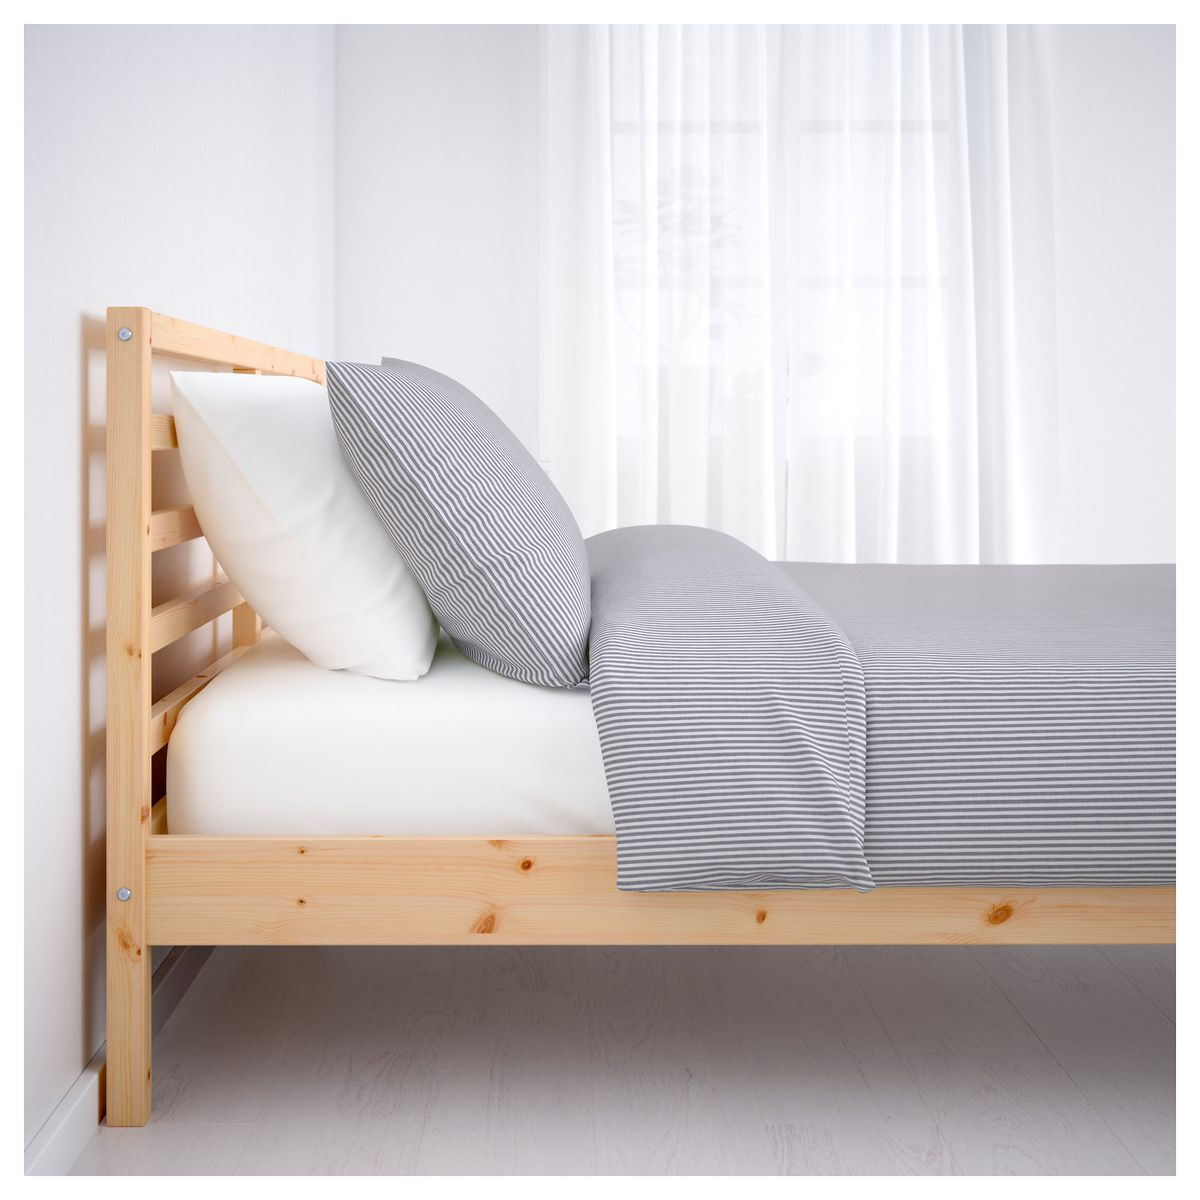 Bed frames: necessity or extra touch? - Curbed